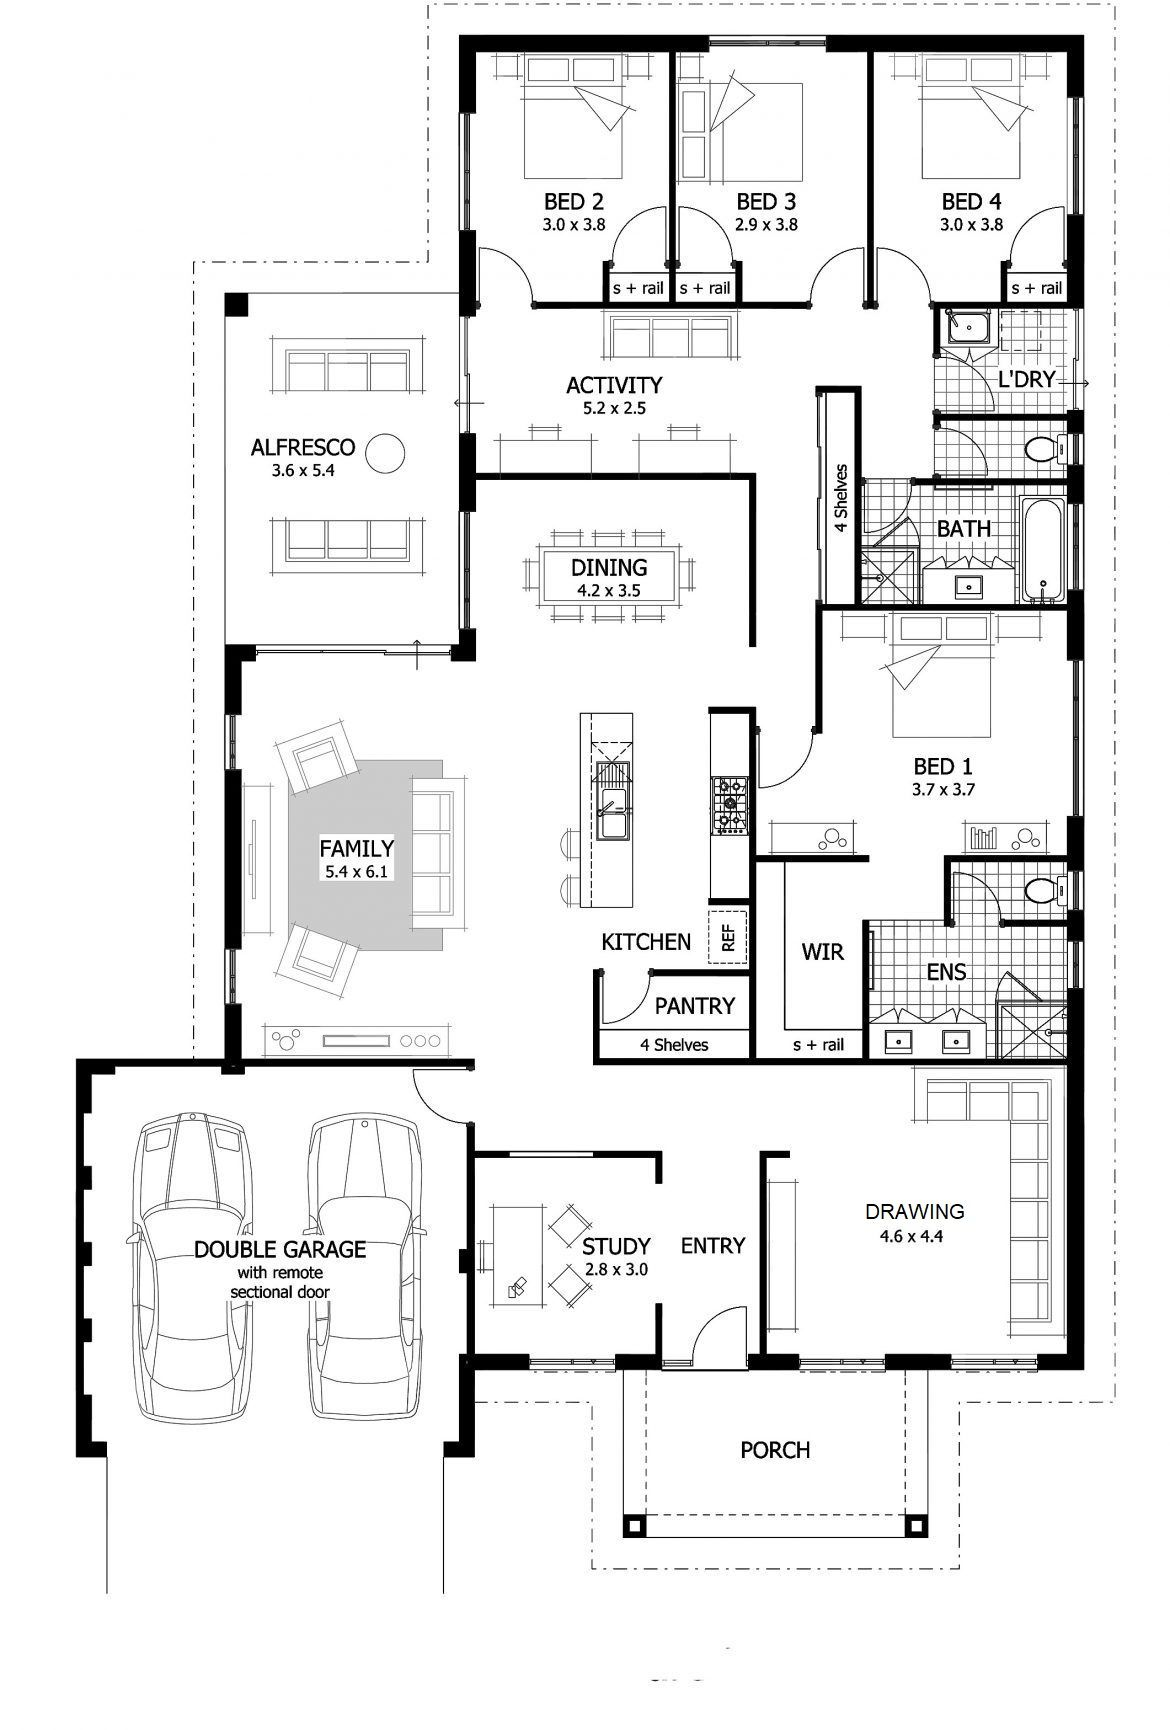 Zohaib31 I Will Convert Hand Sketch Pdf Or Image Drawings To Auotcad For 15 On Fiverr Com In 2020 Mobile Home Floor Plans Mansion Floor Plan Castle Floor Plan